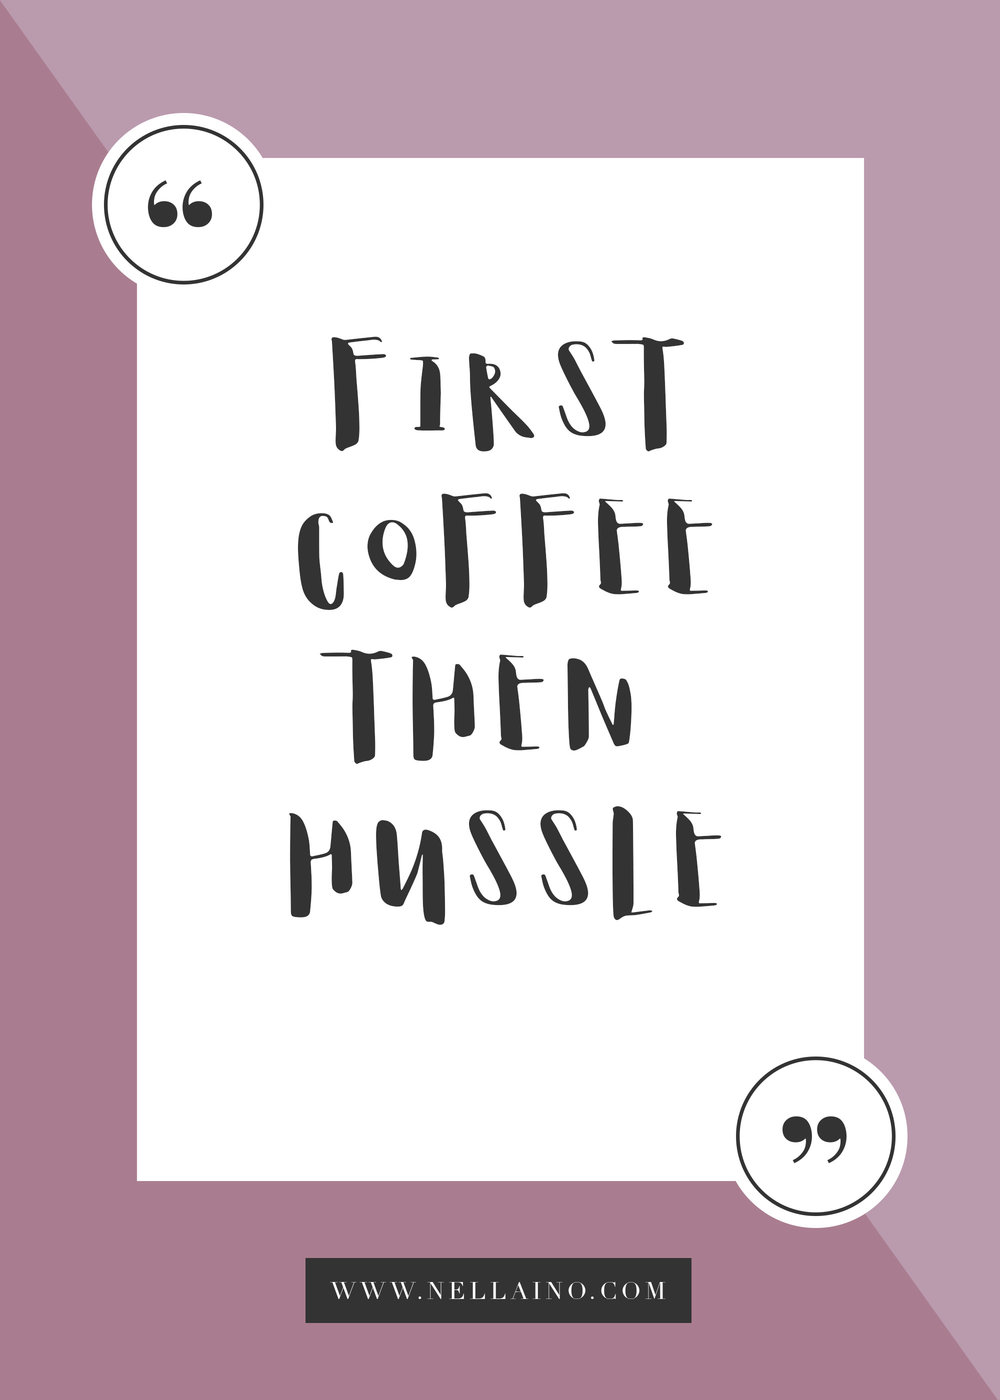 First coffee then hussle quote by Nellaino #liveyourlifetothefullest